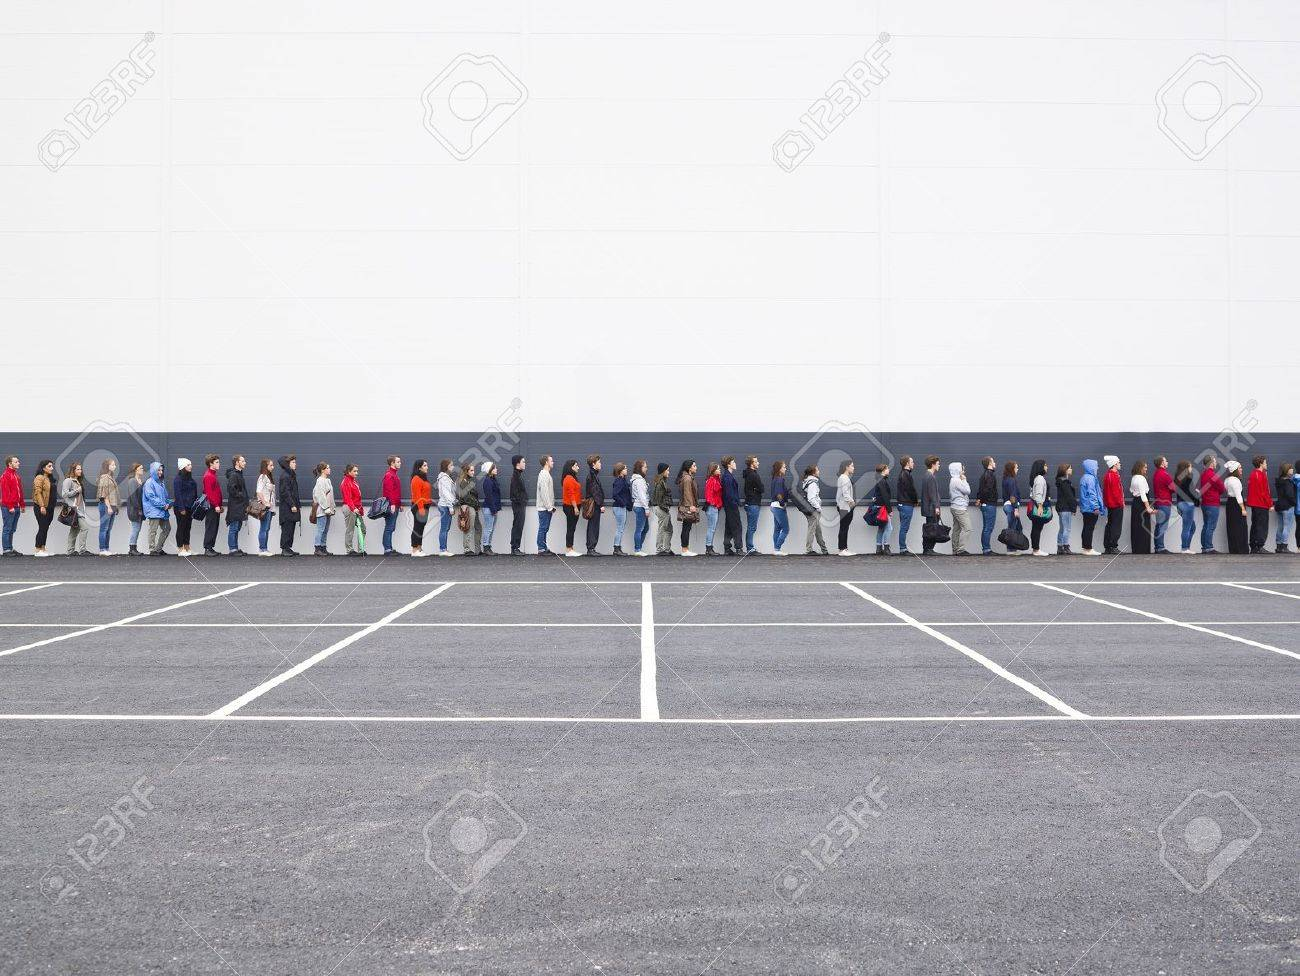 Large group of people waiting in line Stock Photo - 10696270